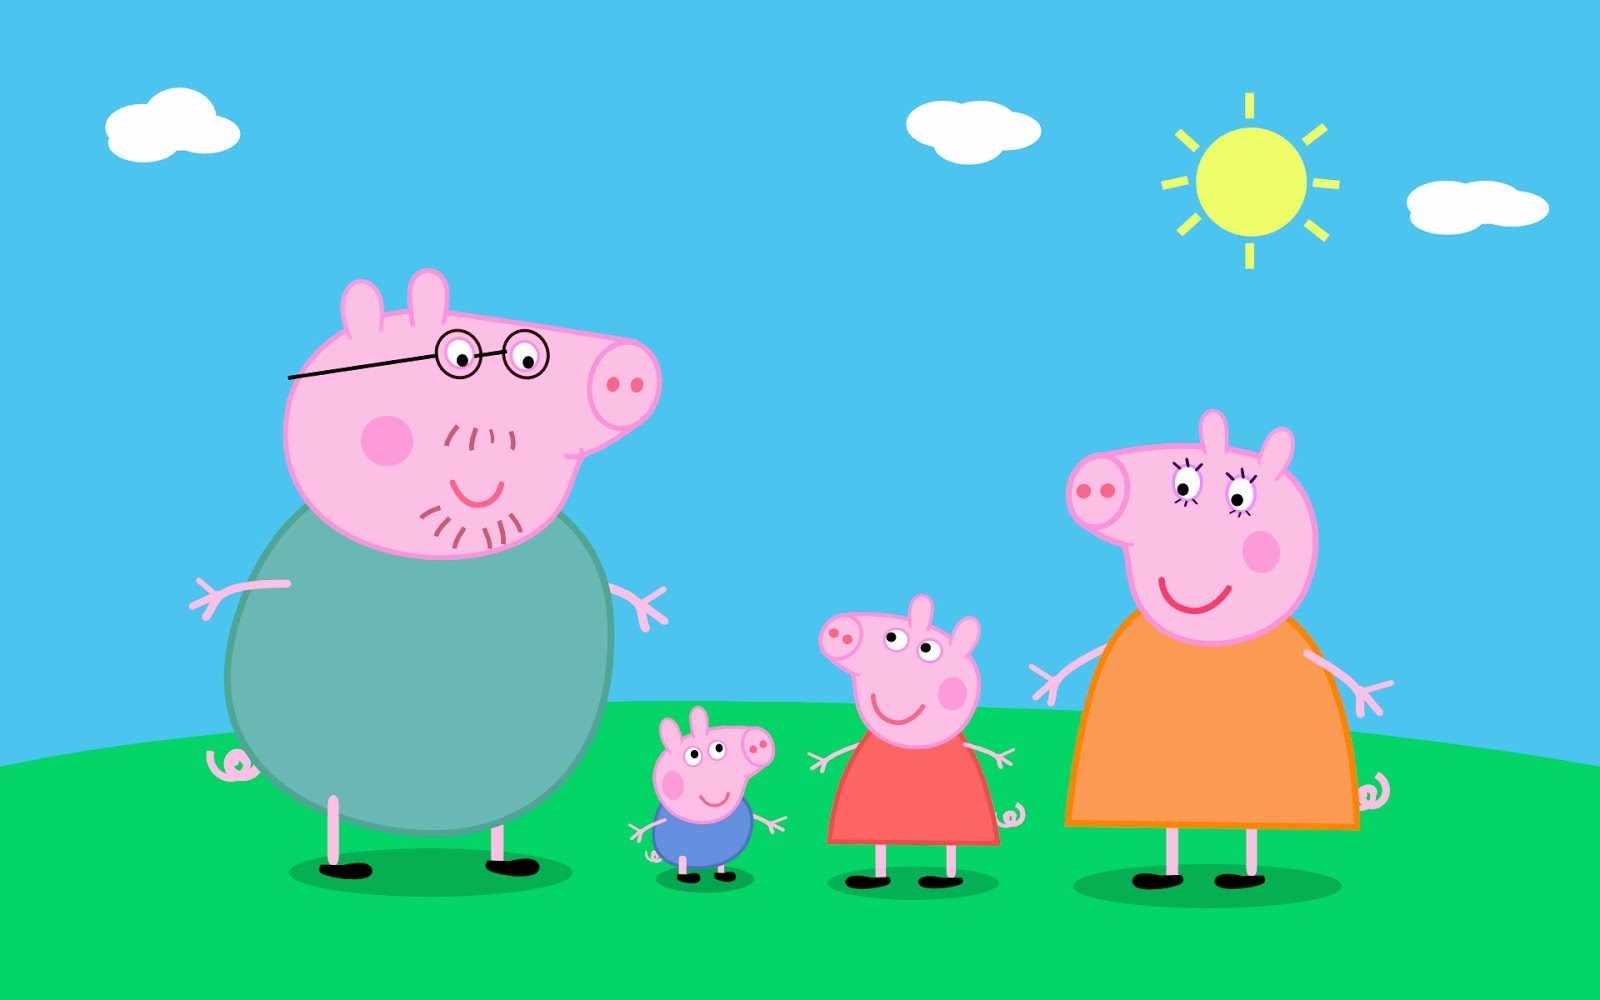 a lovely day for english peppa pig characters